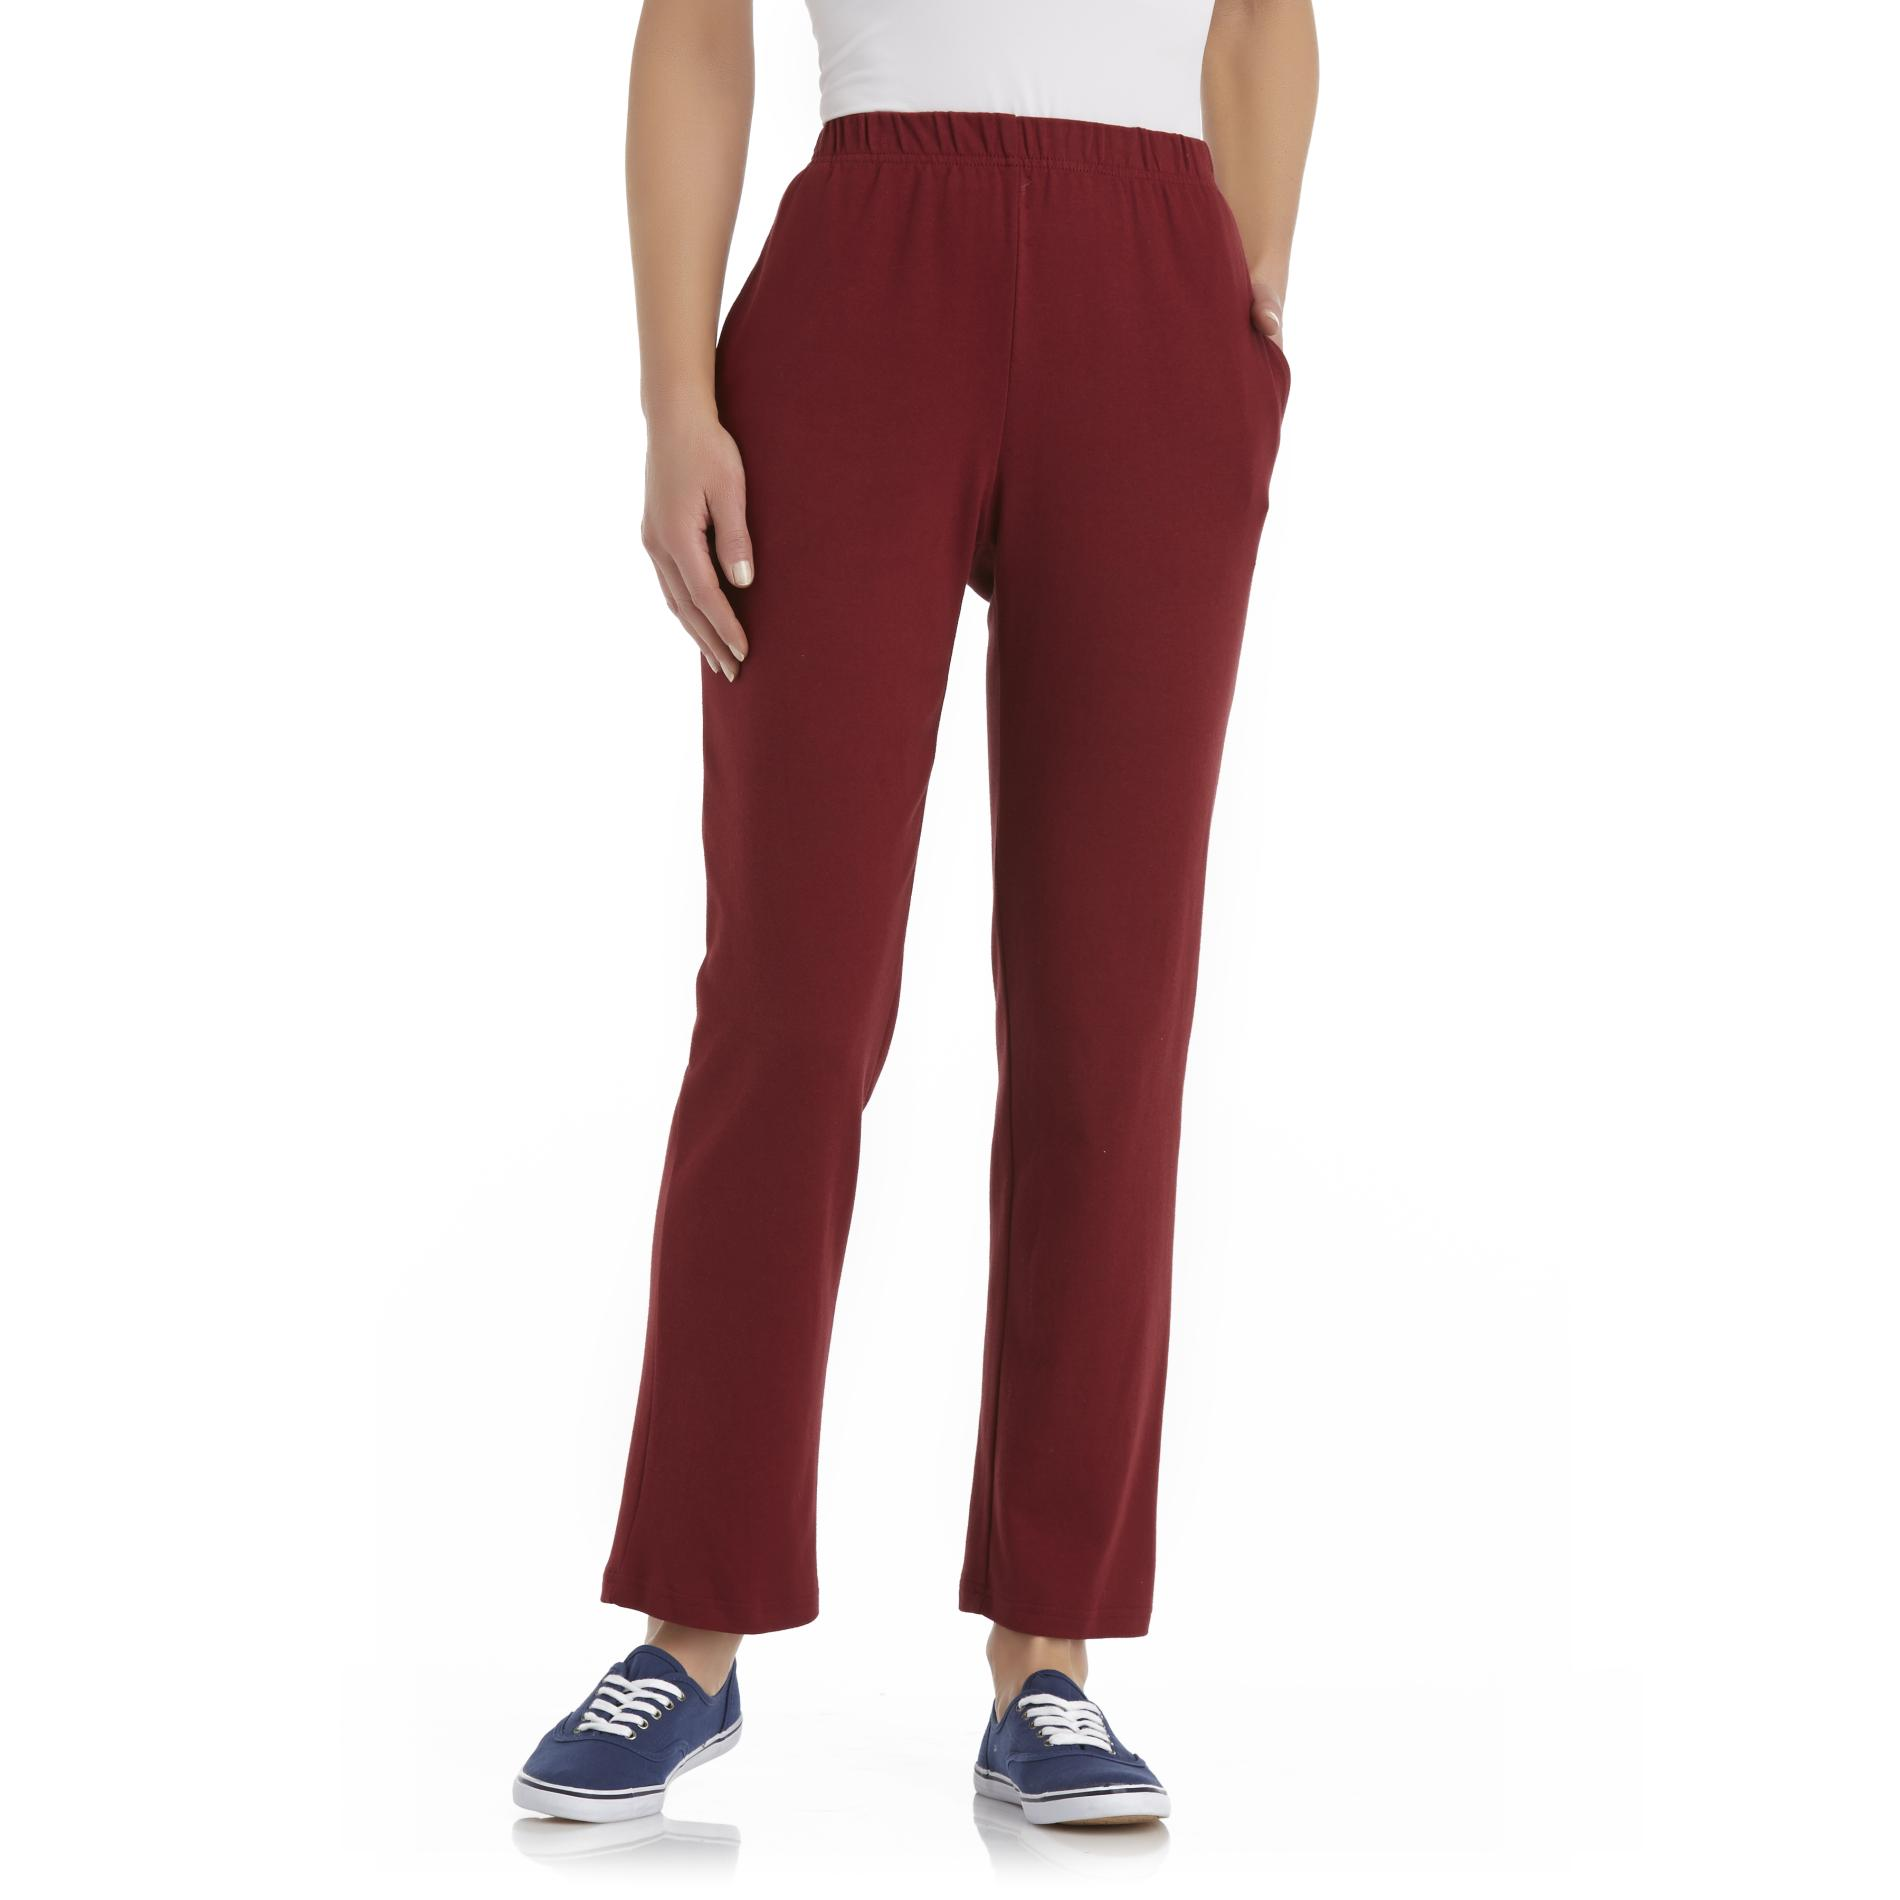 Basic Editions Women's Pull On Knit Pants at Kmart.com